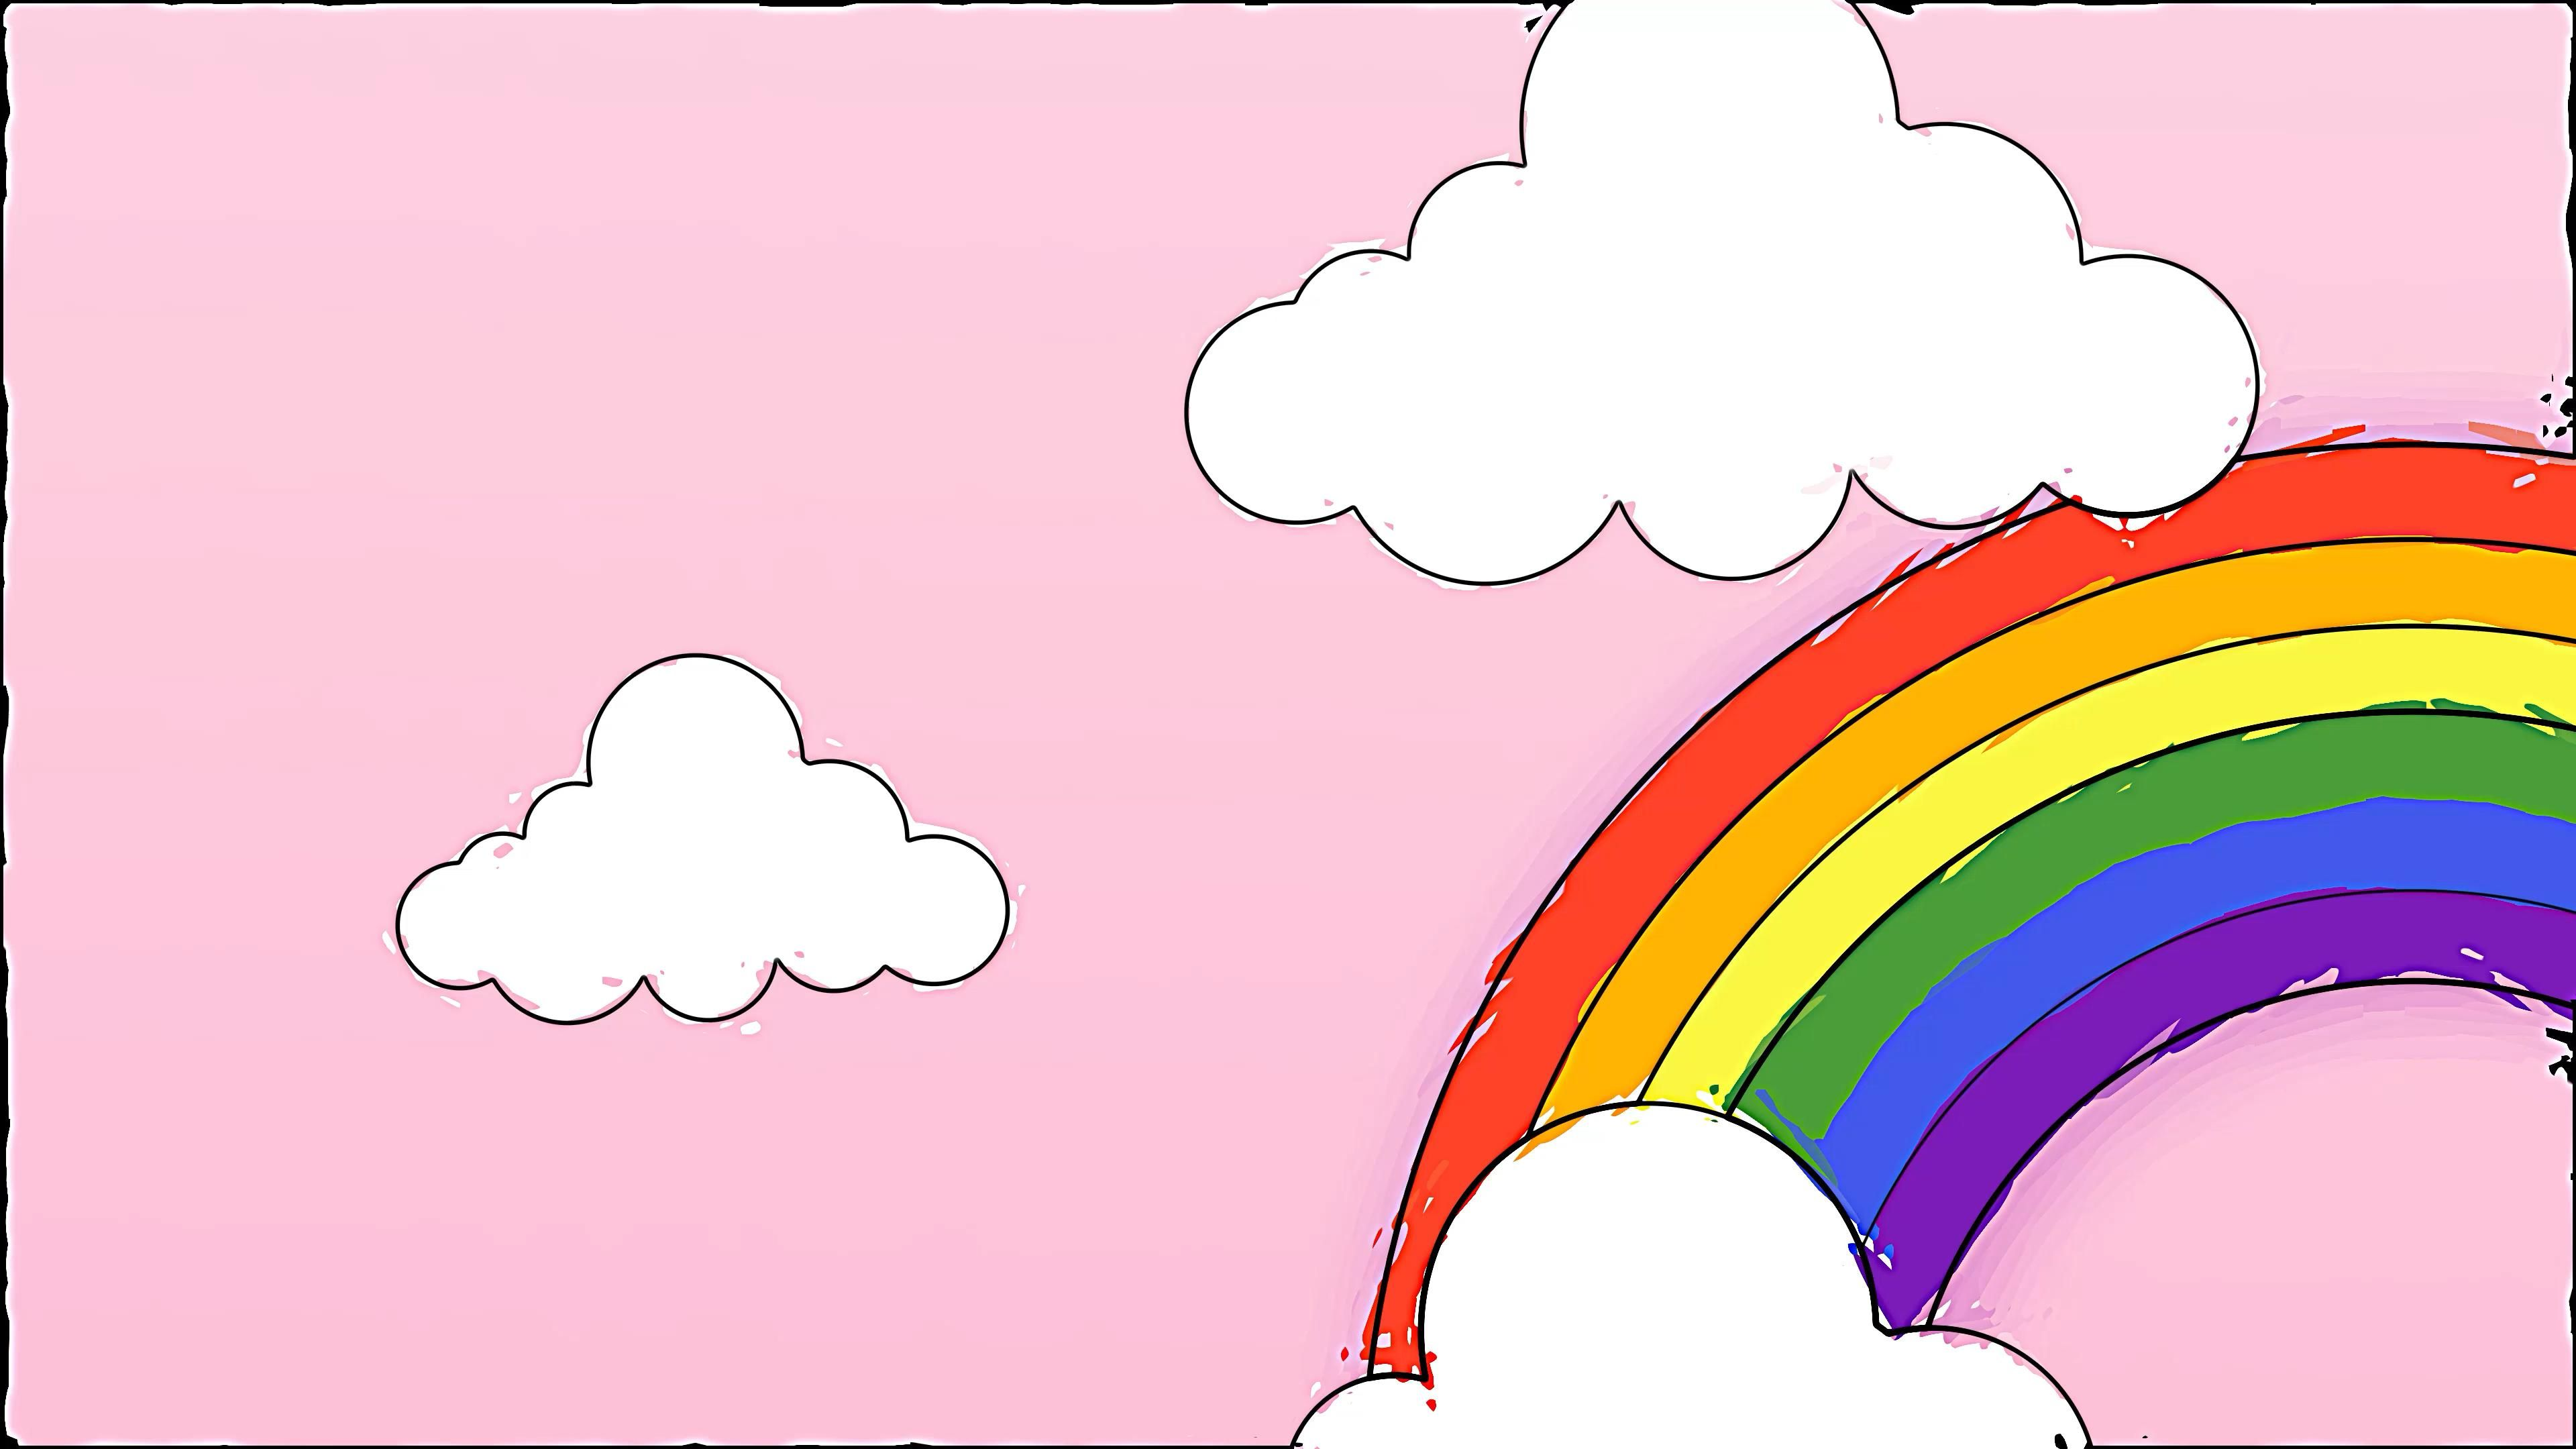 Free Motion Graphic Background 🌈 Rainbow Doodle Drawing Video for Virtual Classroom